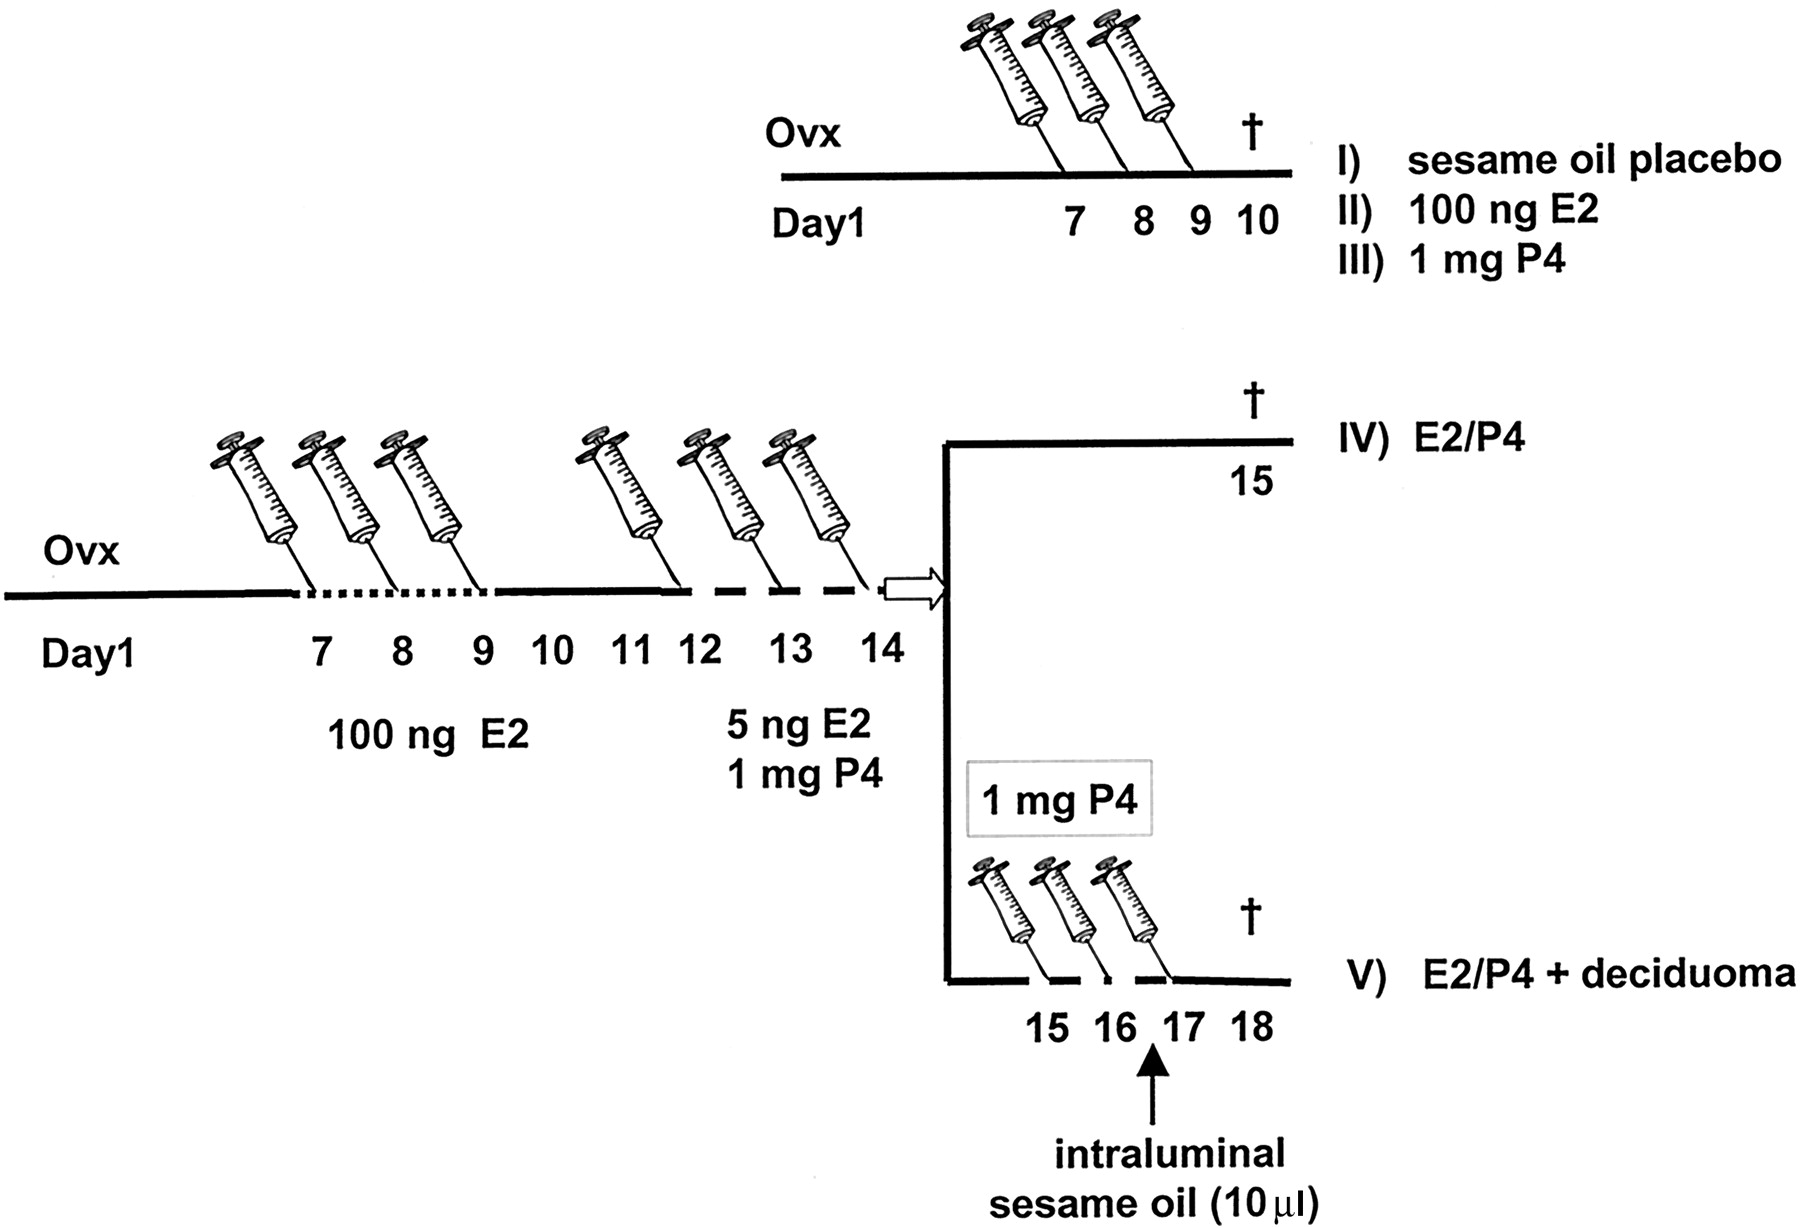 Coordinate Regulation Of Lymphocyte Endothelial Interactions By Image 1 1972 Mgb Gt Original Wiring Diagram Click To Enlarge Download Figure